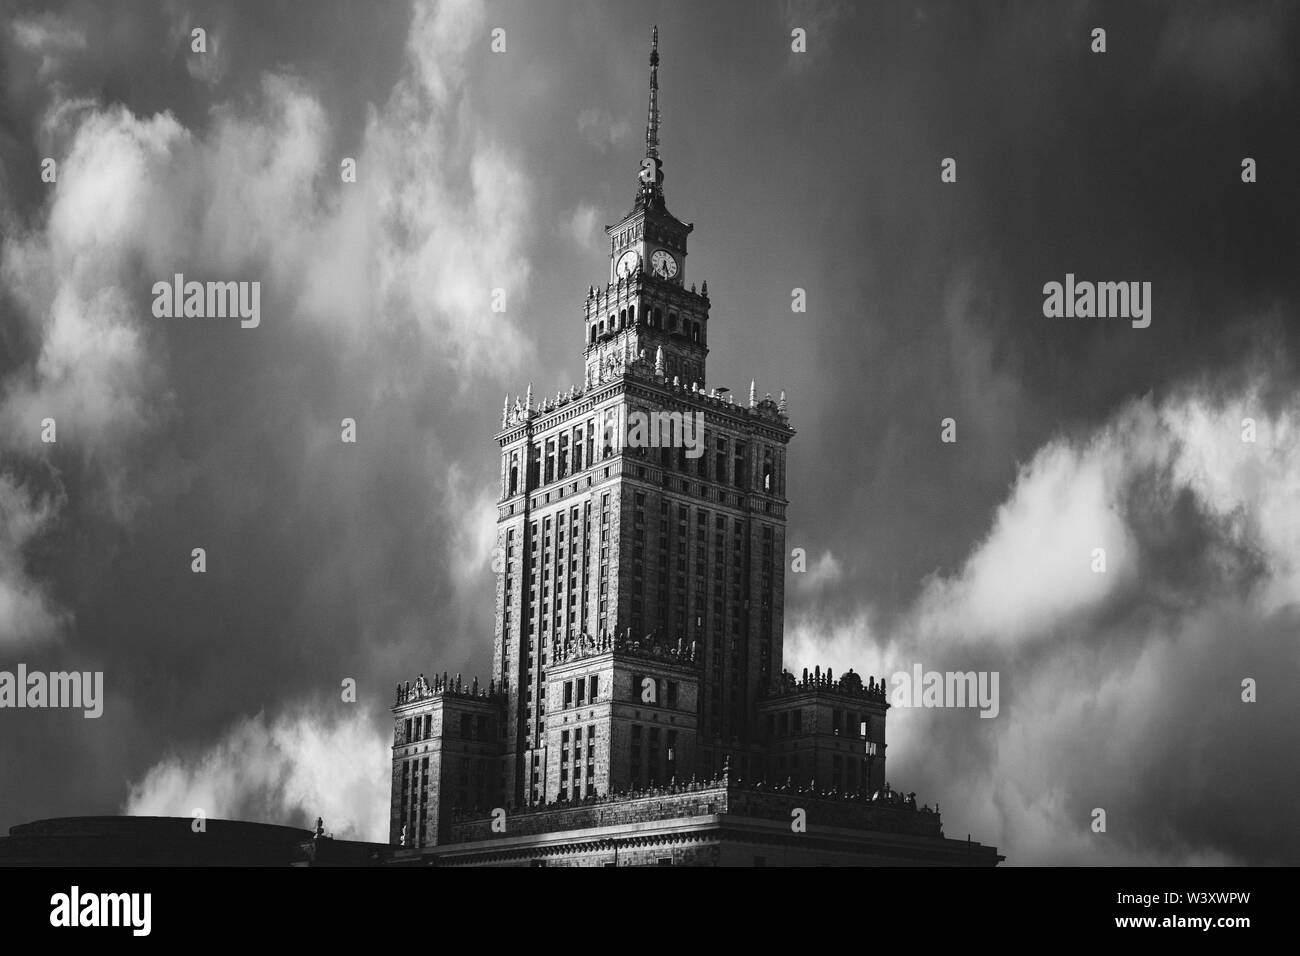 Palace of Culture and Science, Warsaw. Stock Photo